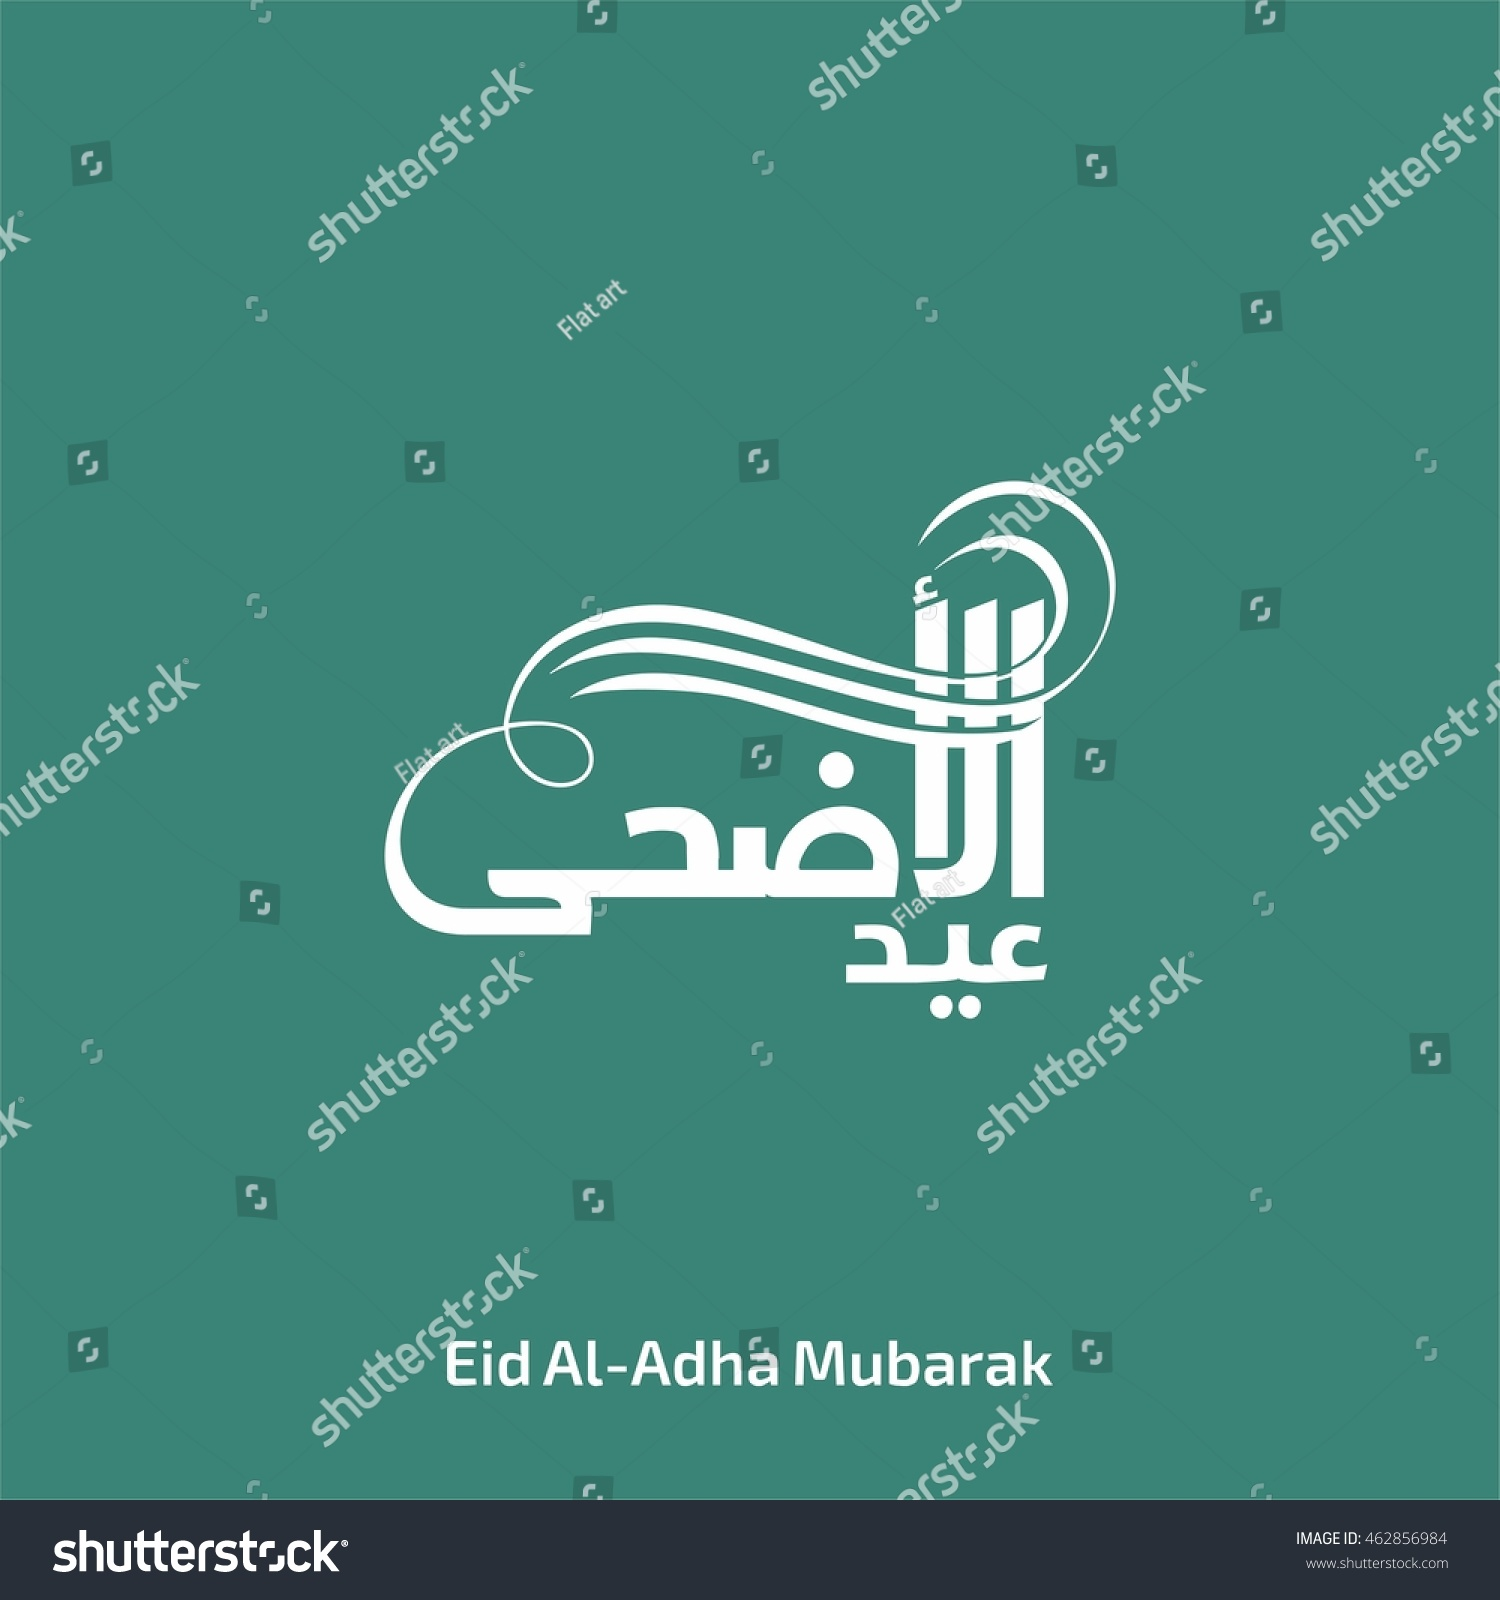 Eid al adha arabic urdu calligraphy stock vector 462856984 eid al adha arabic urdu calligraphy flat green background greeting card kristyandbryce Image collections